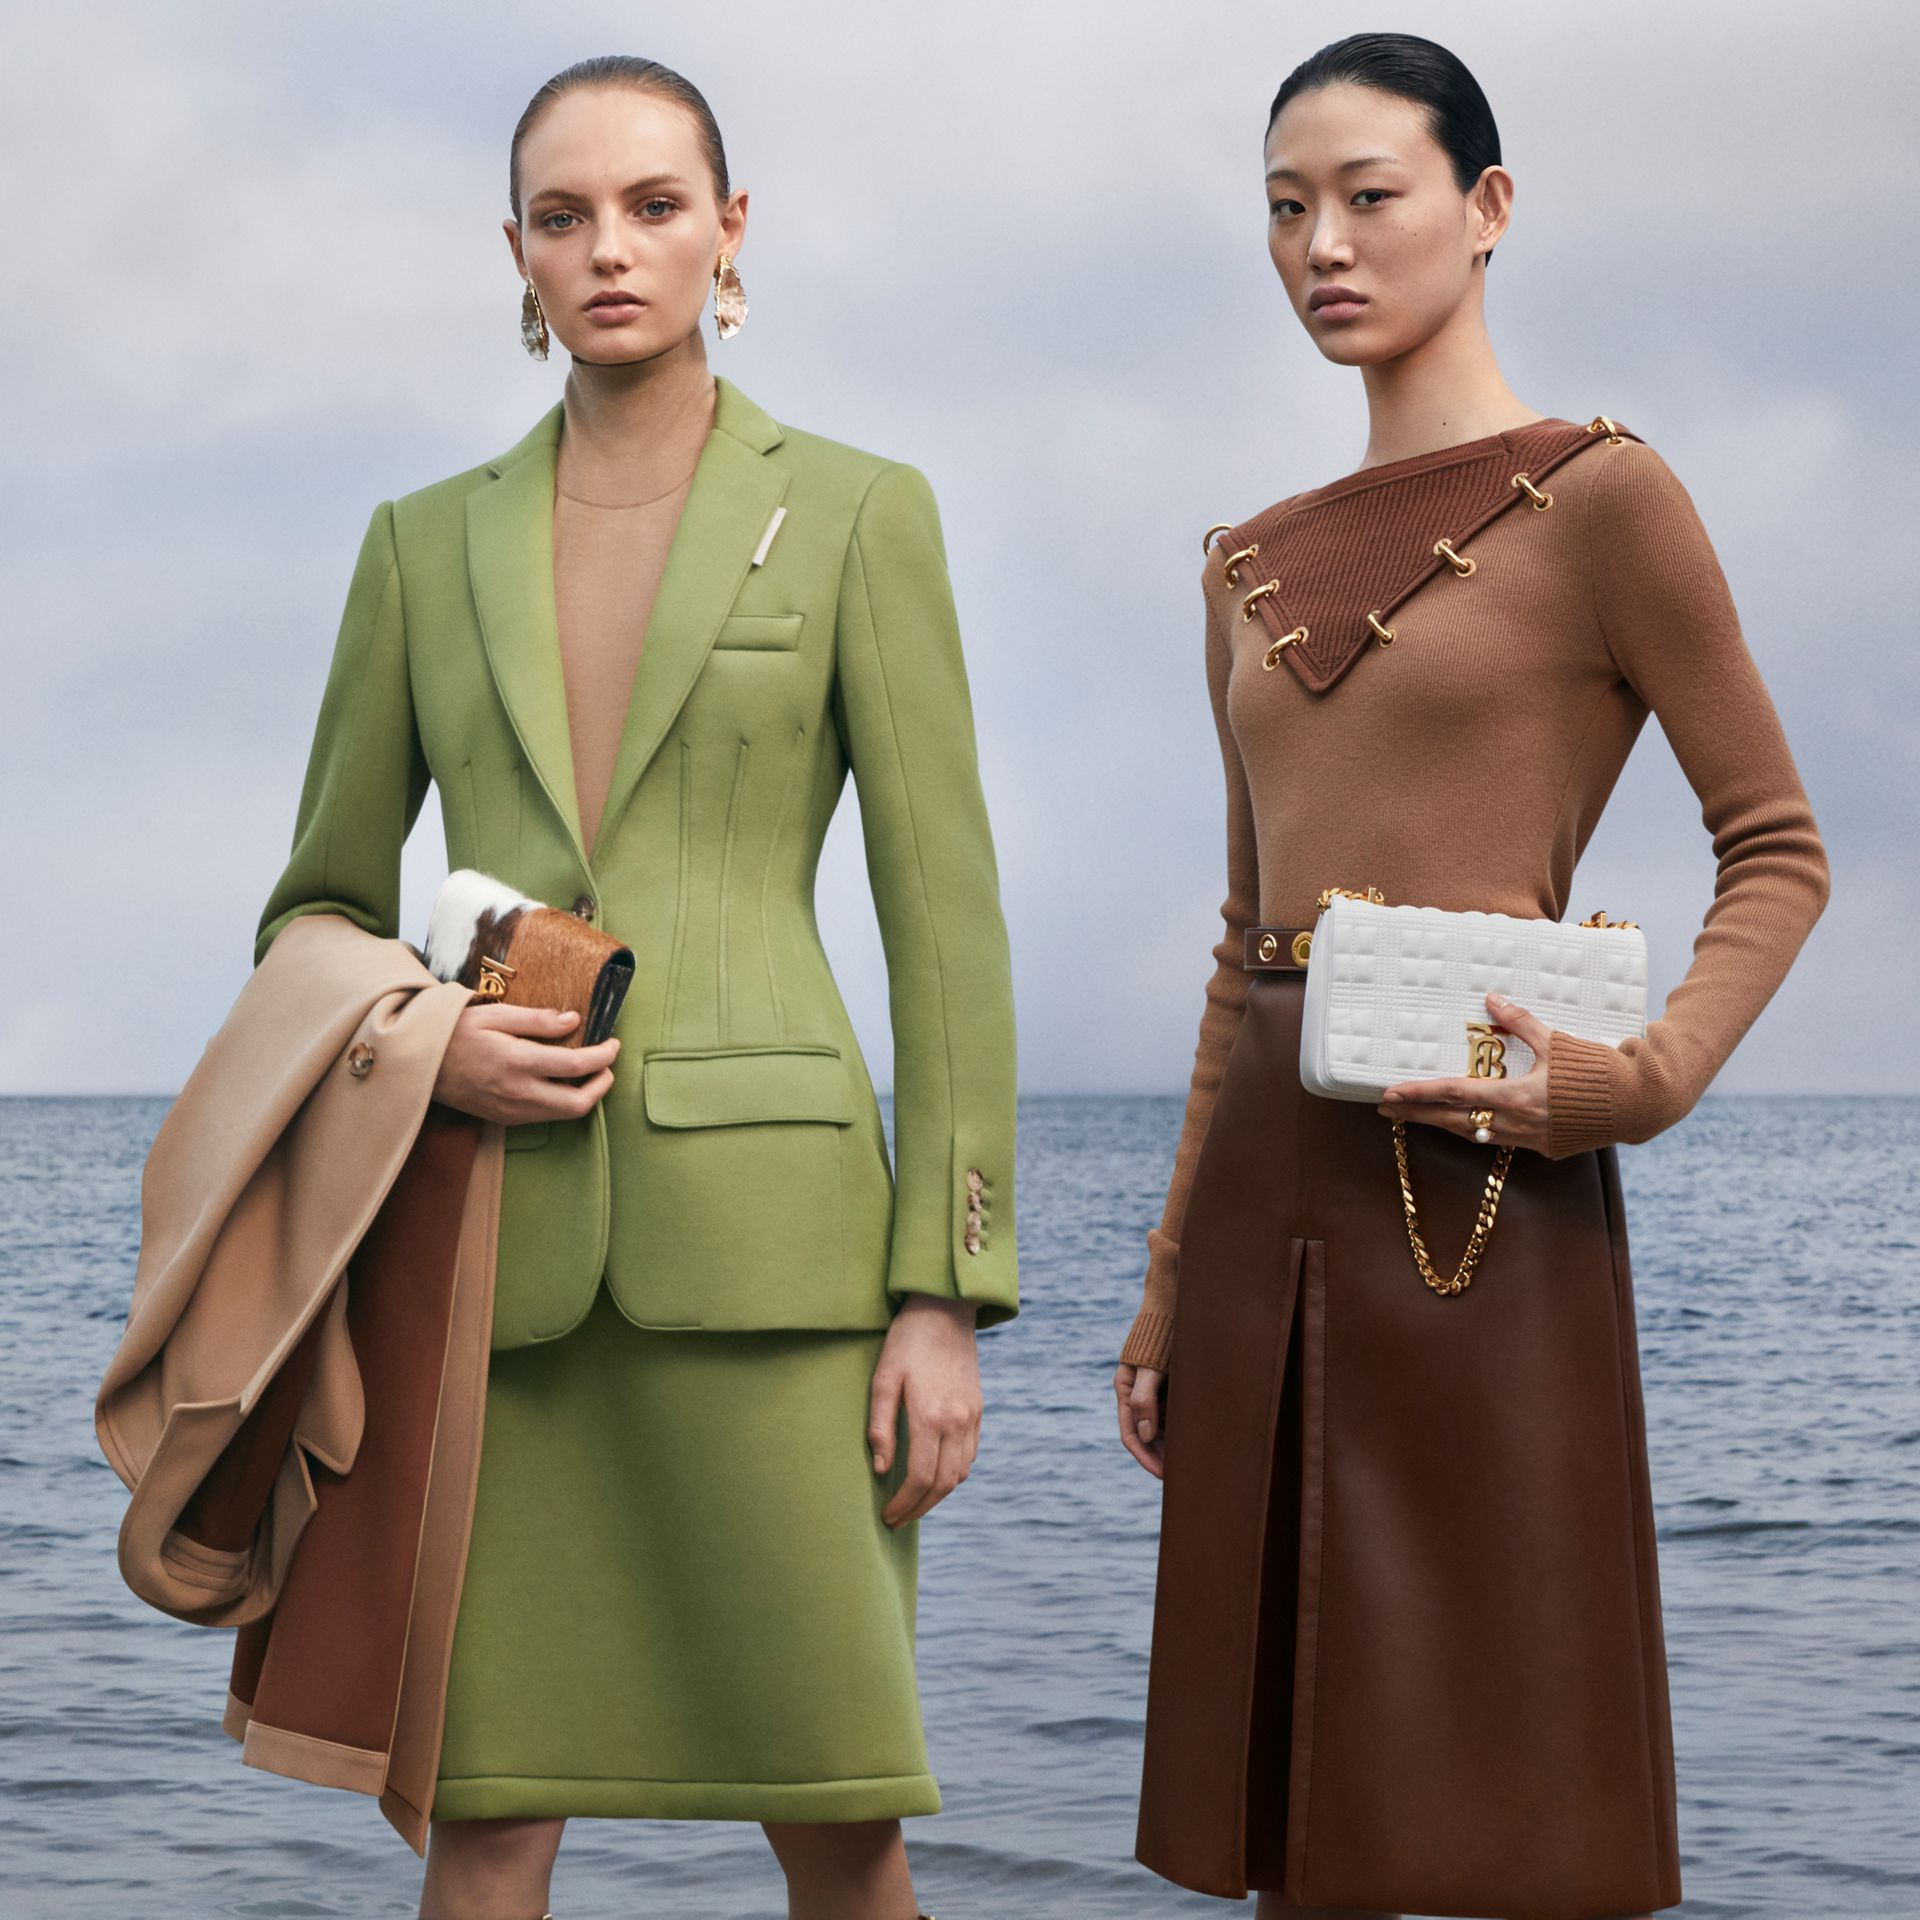 Double-faced Neoprene Tailored Jacket in Cedar Green - Women | Burberry - gallery image 1